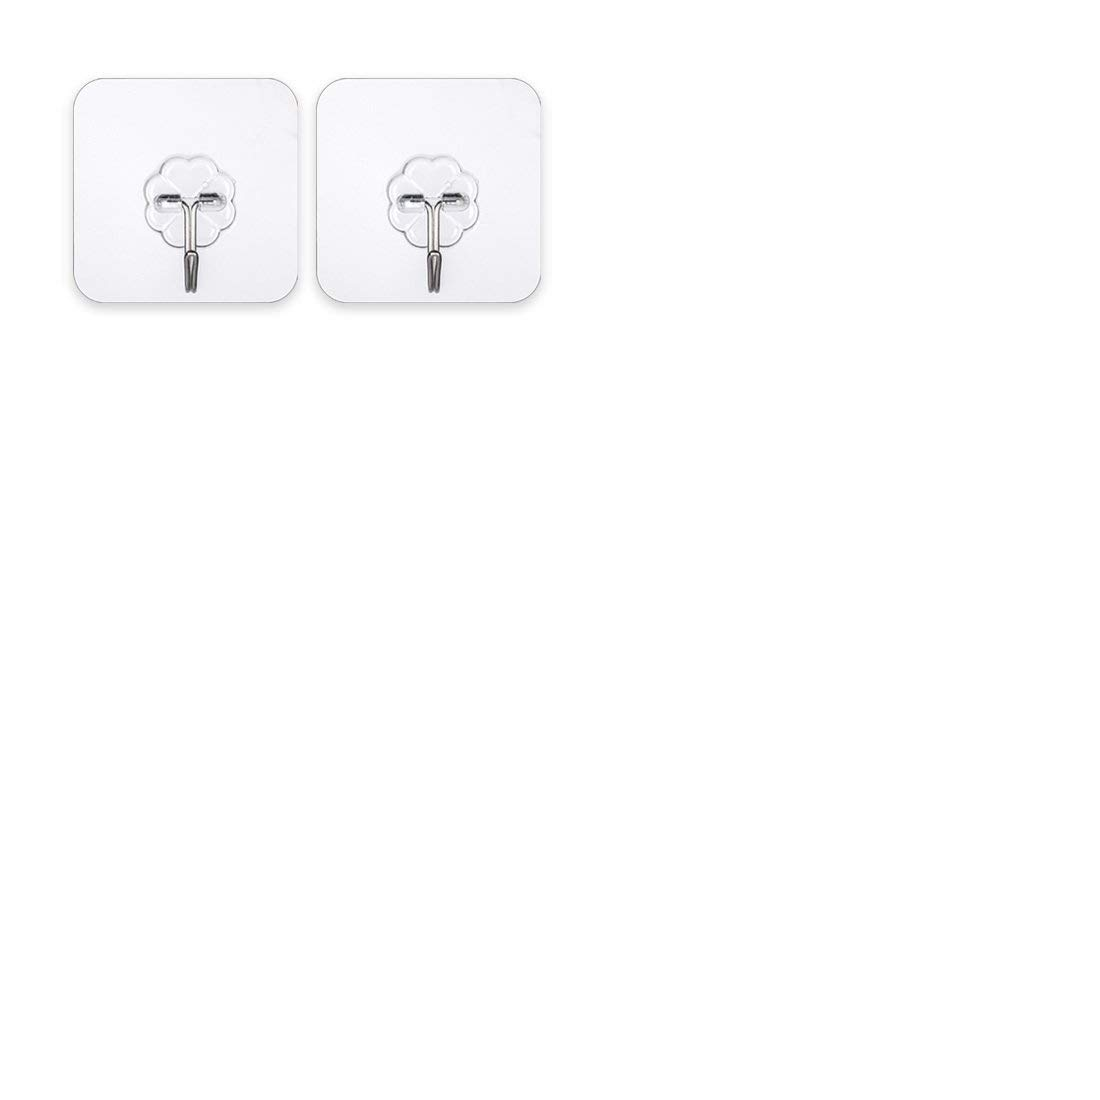 Out of Stock Self Adhesive Hooks Set of 10 Wall Hooks Reusable Kitchen Towel Bath